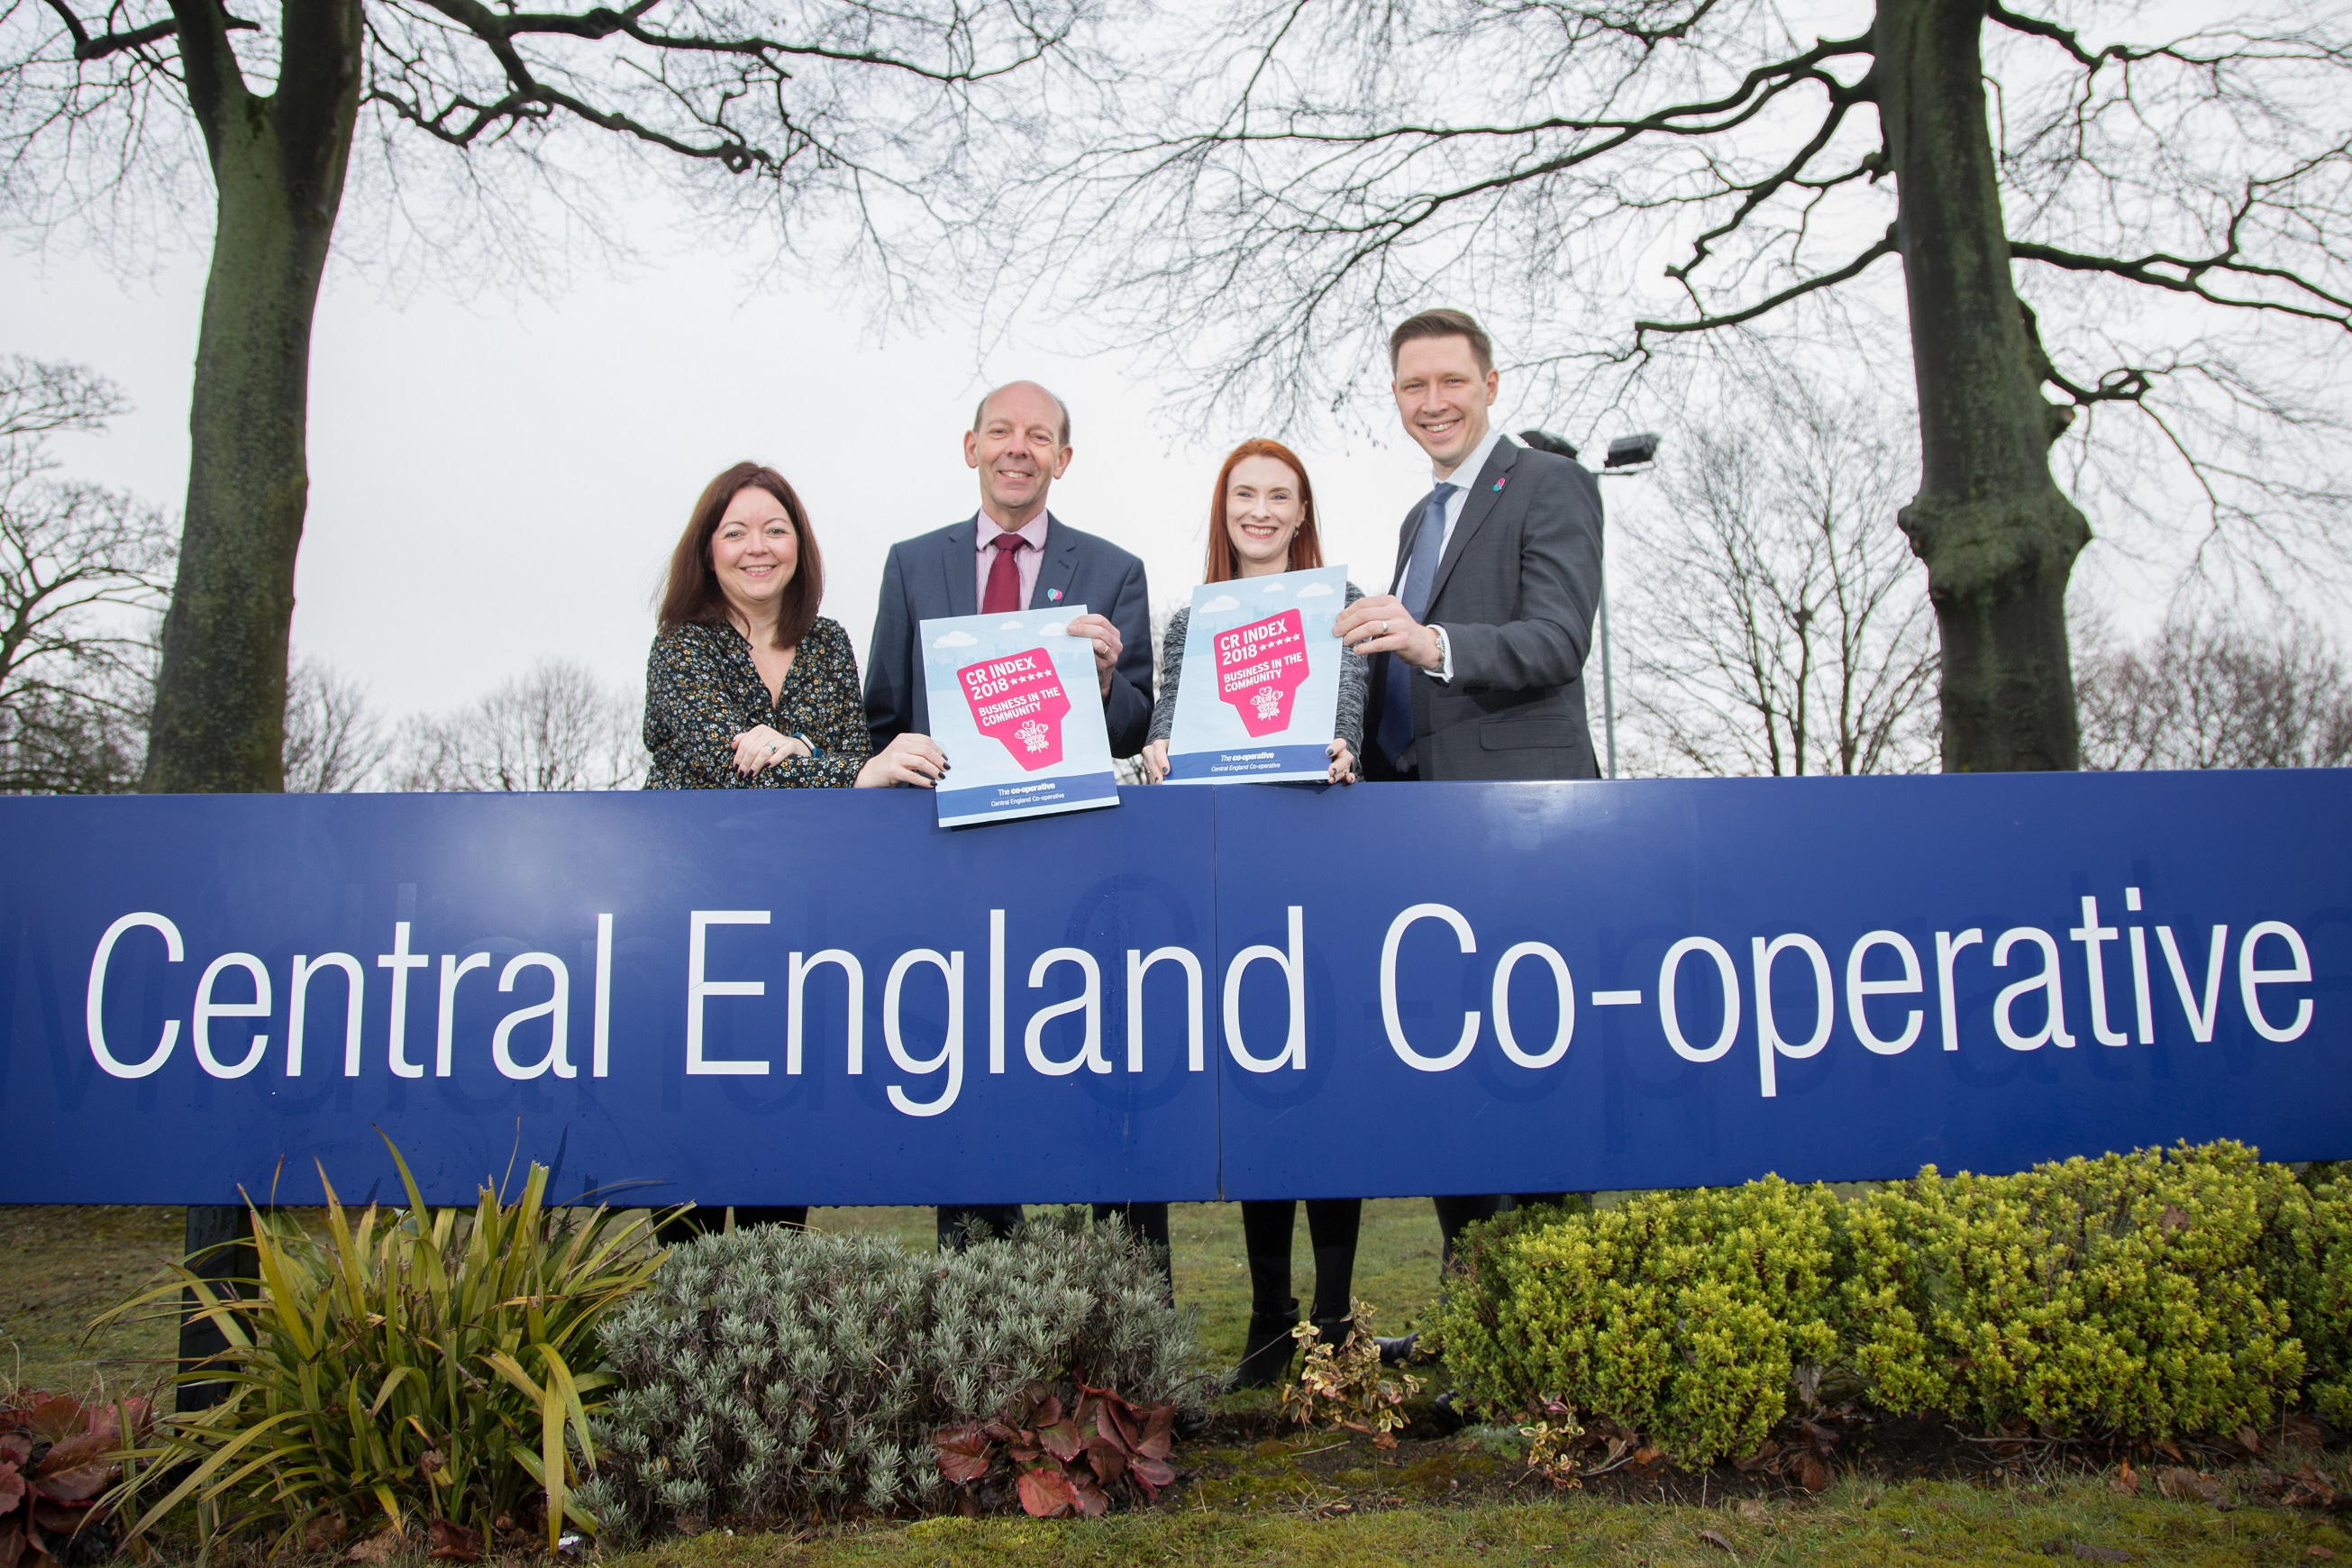 Central England Co-operative - shop local with an ethical